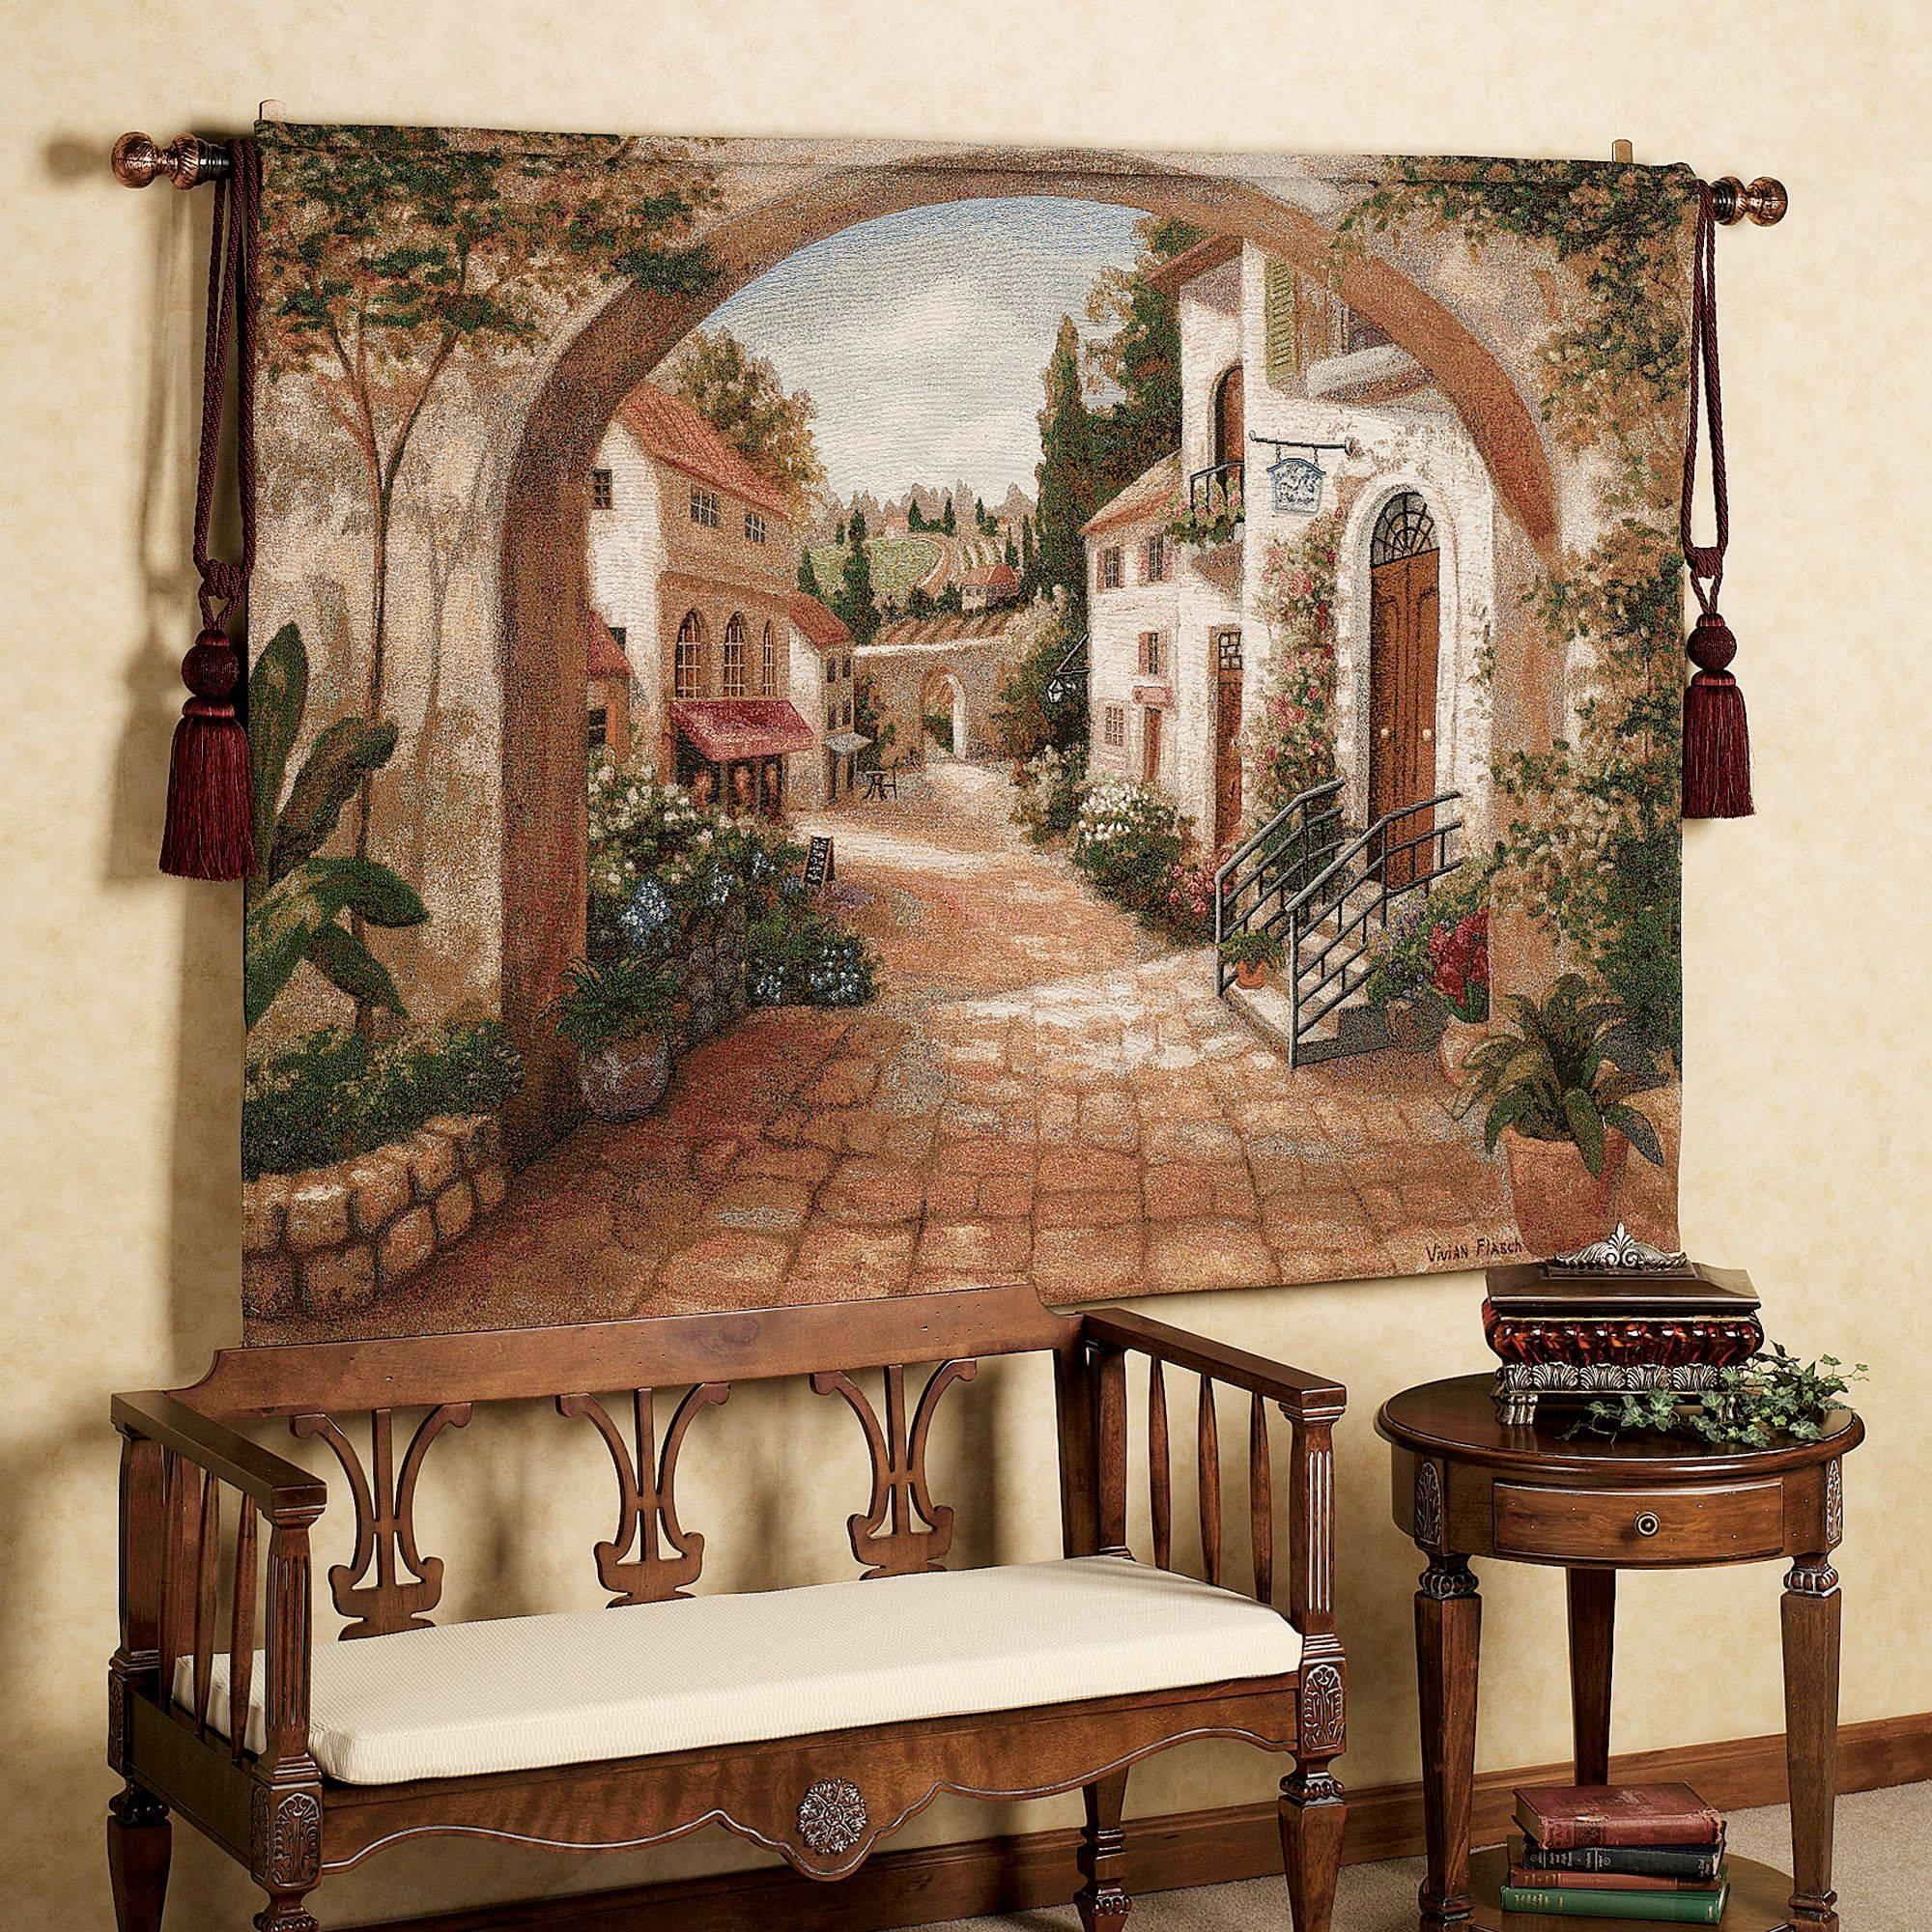 Delightful Decoration Italian Wall Decor Exciting Tuscan And Throughout Most Recent Italian Wall Art Decor (View 6 of 30)